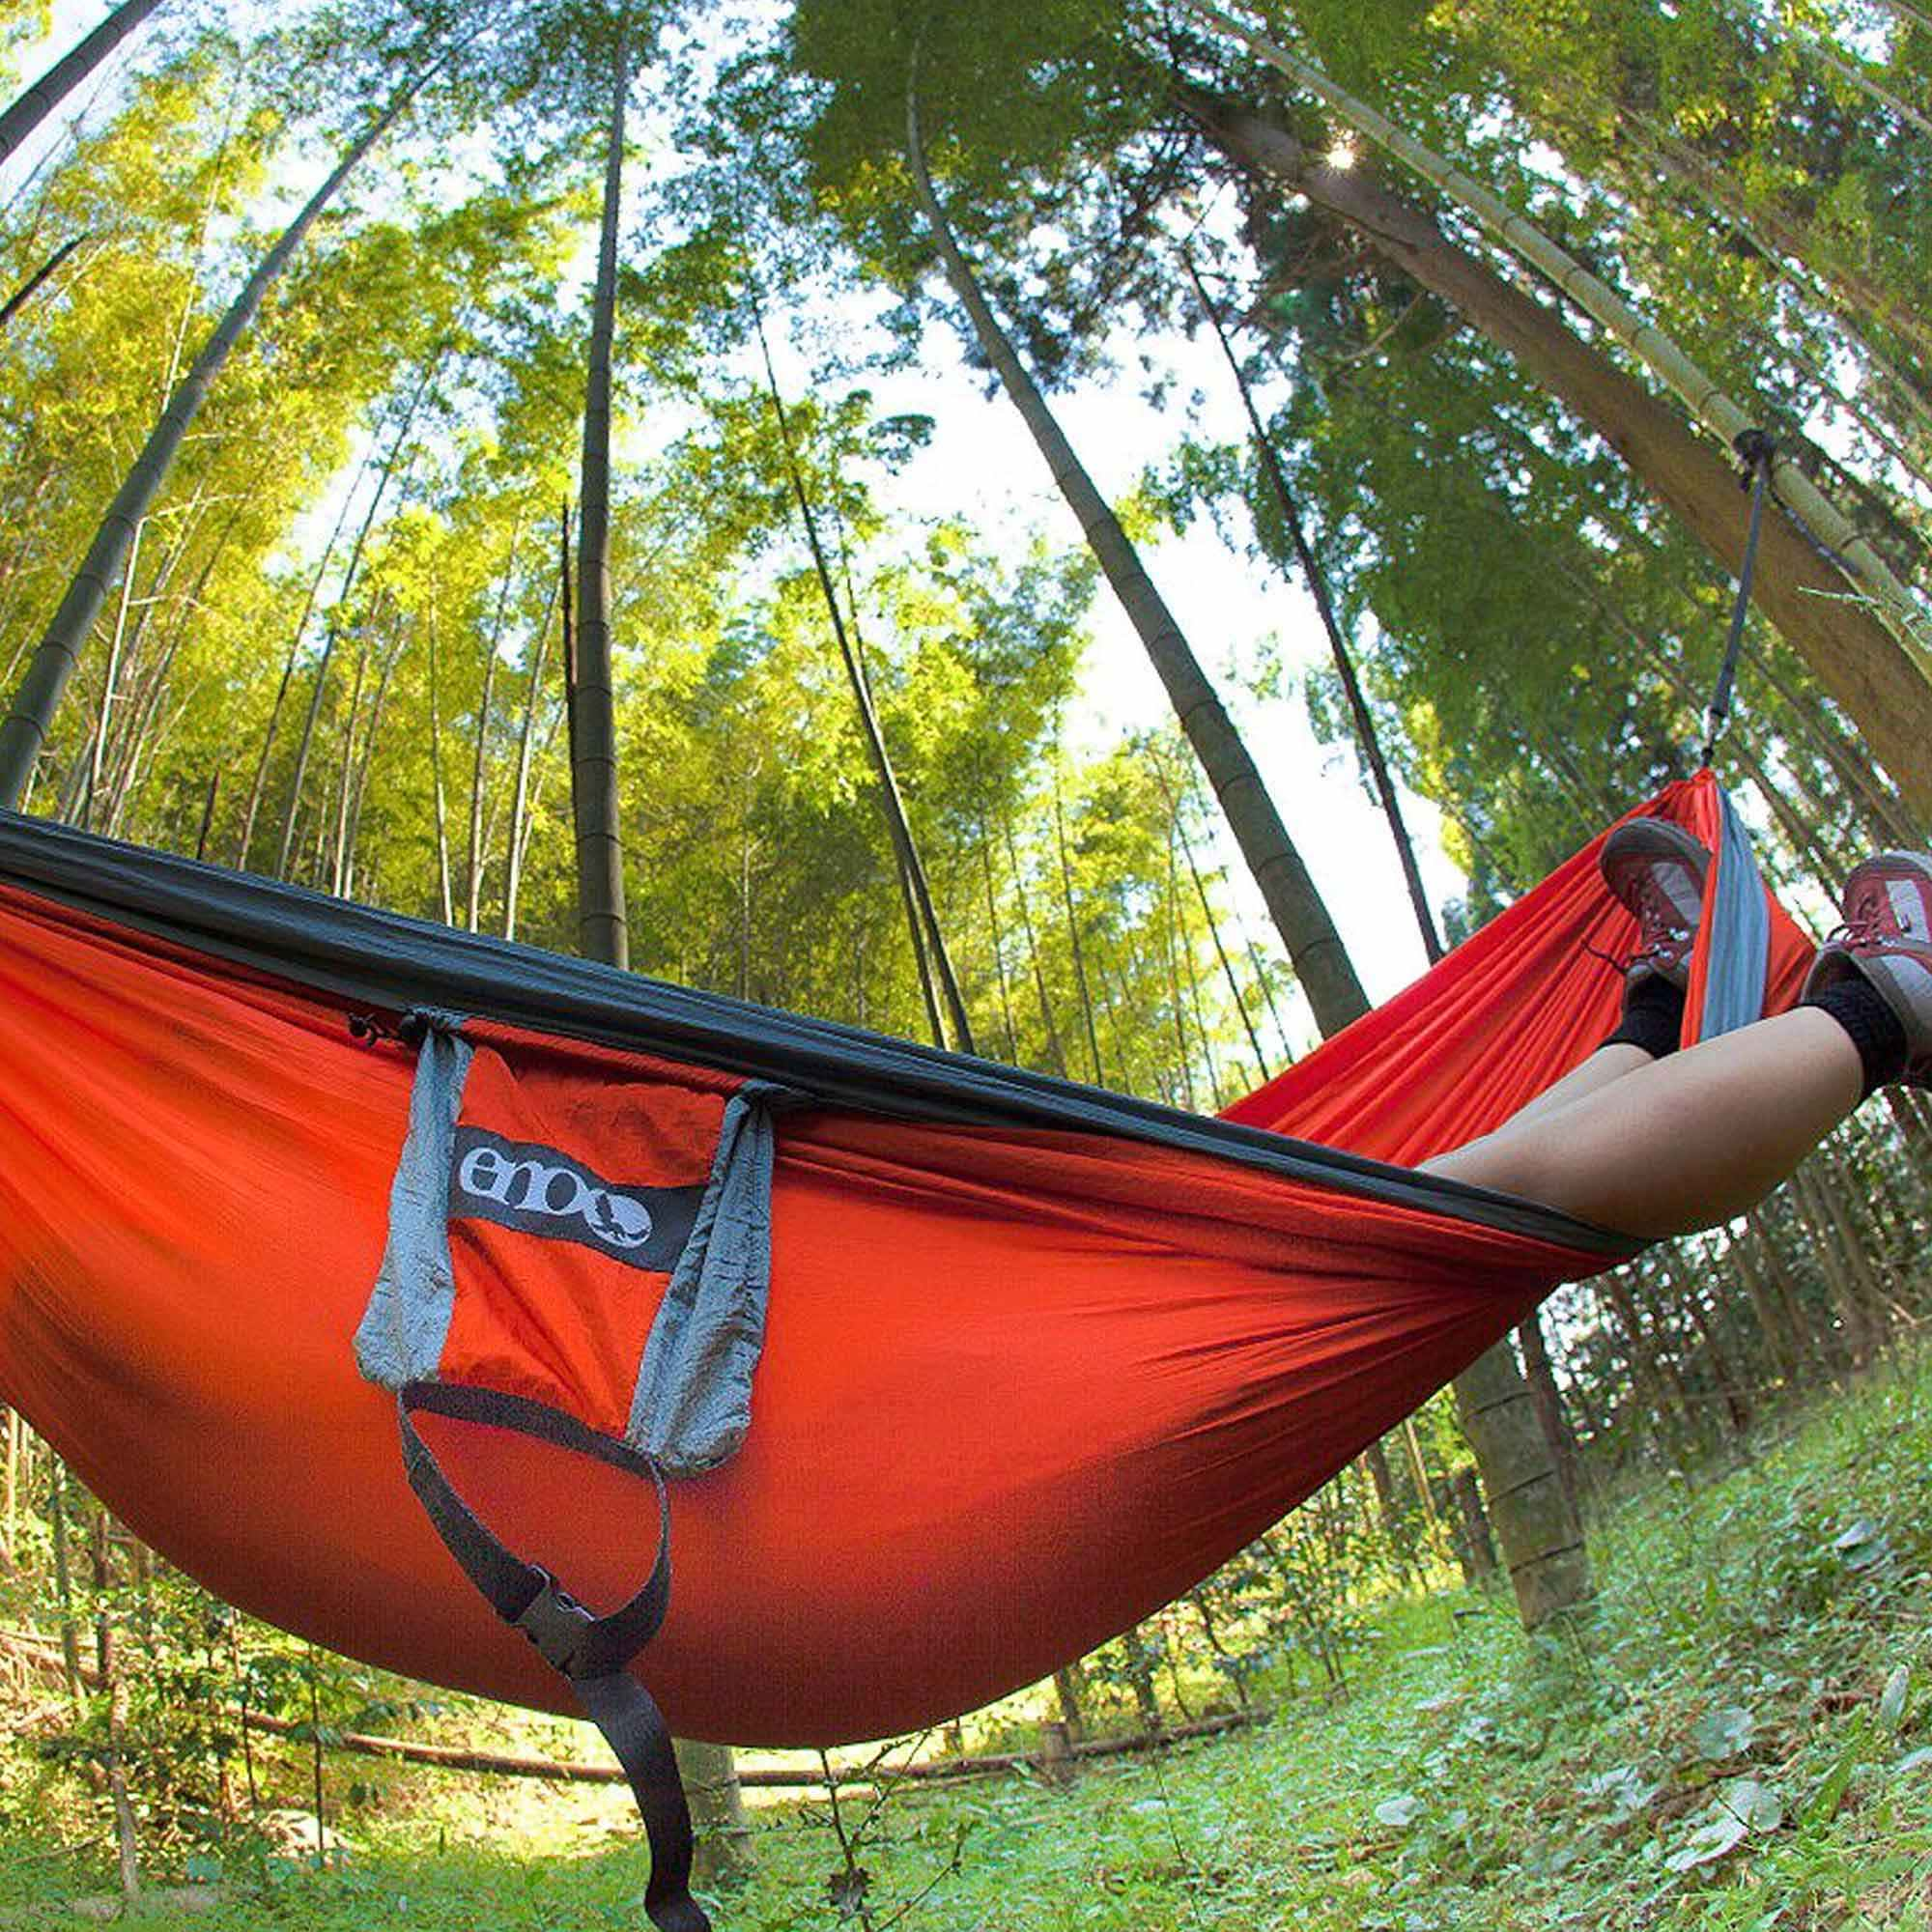 in with rated cotton combo vivere best customer travel double com image hammock amazon denim pcr reviews stand helpful white hammocks product